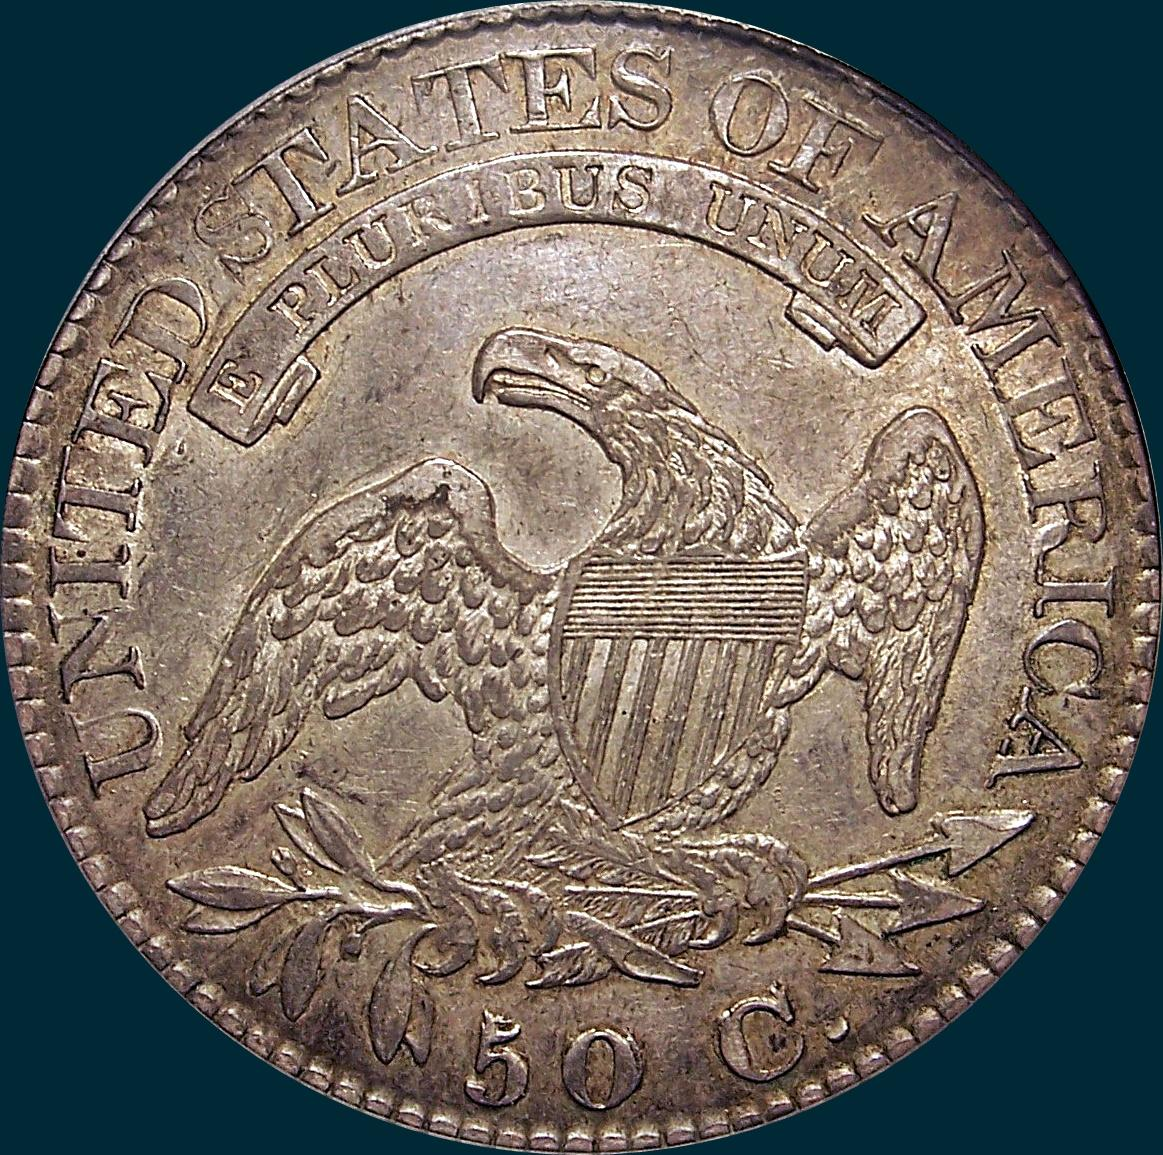 1825, O-111 caped bust half dollar